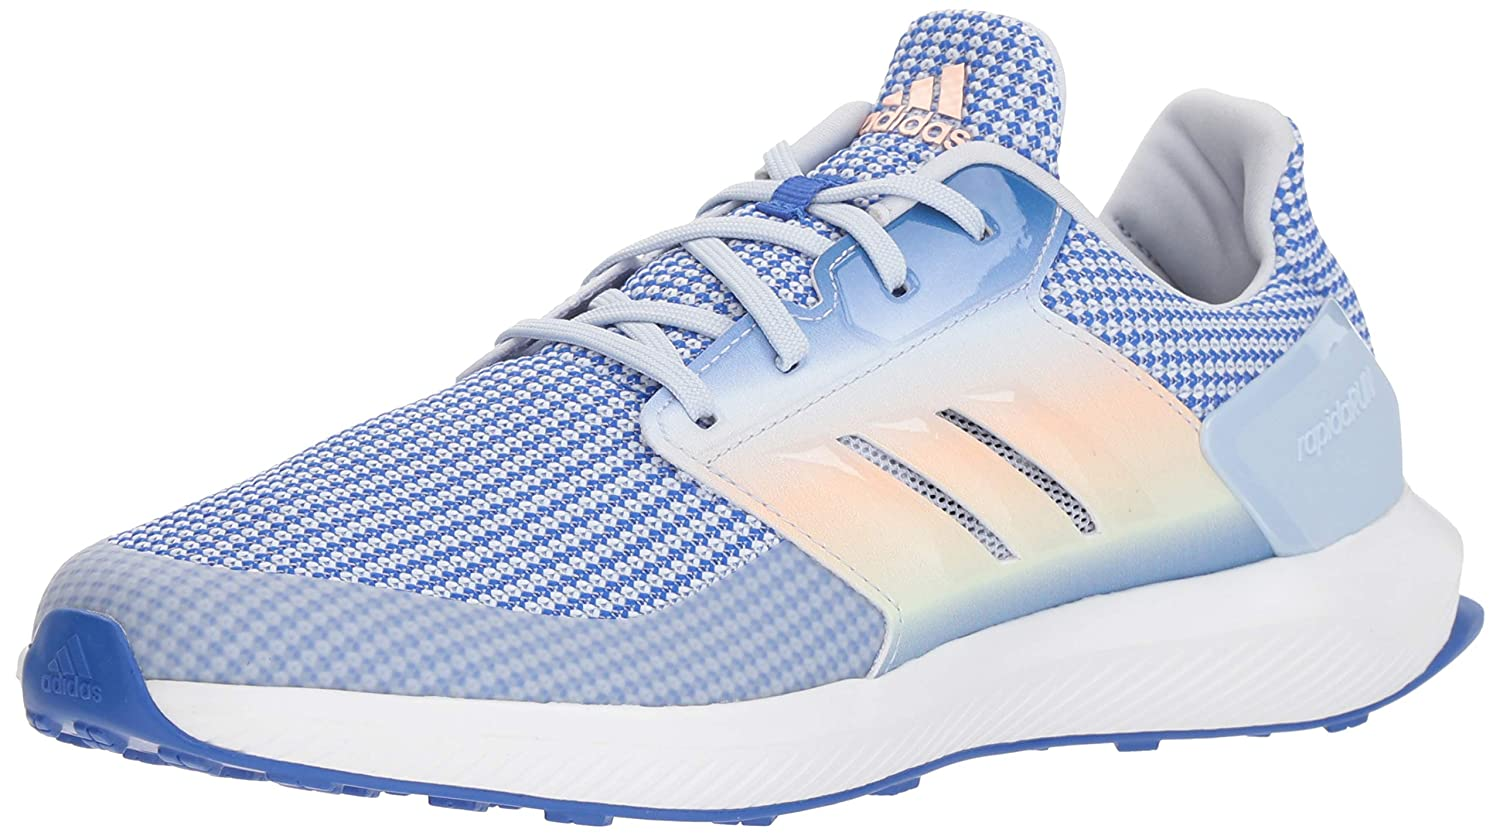 adidas Boys' RapidaRun Training Shoes CQ0146